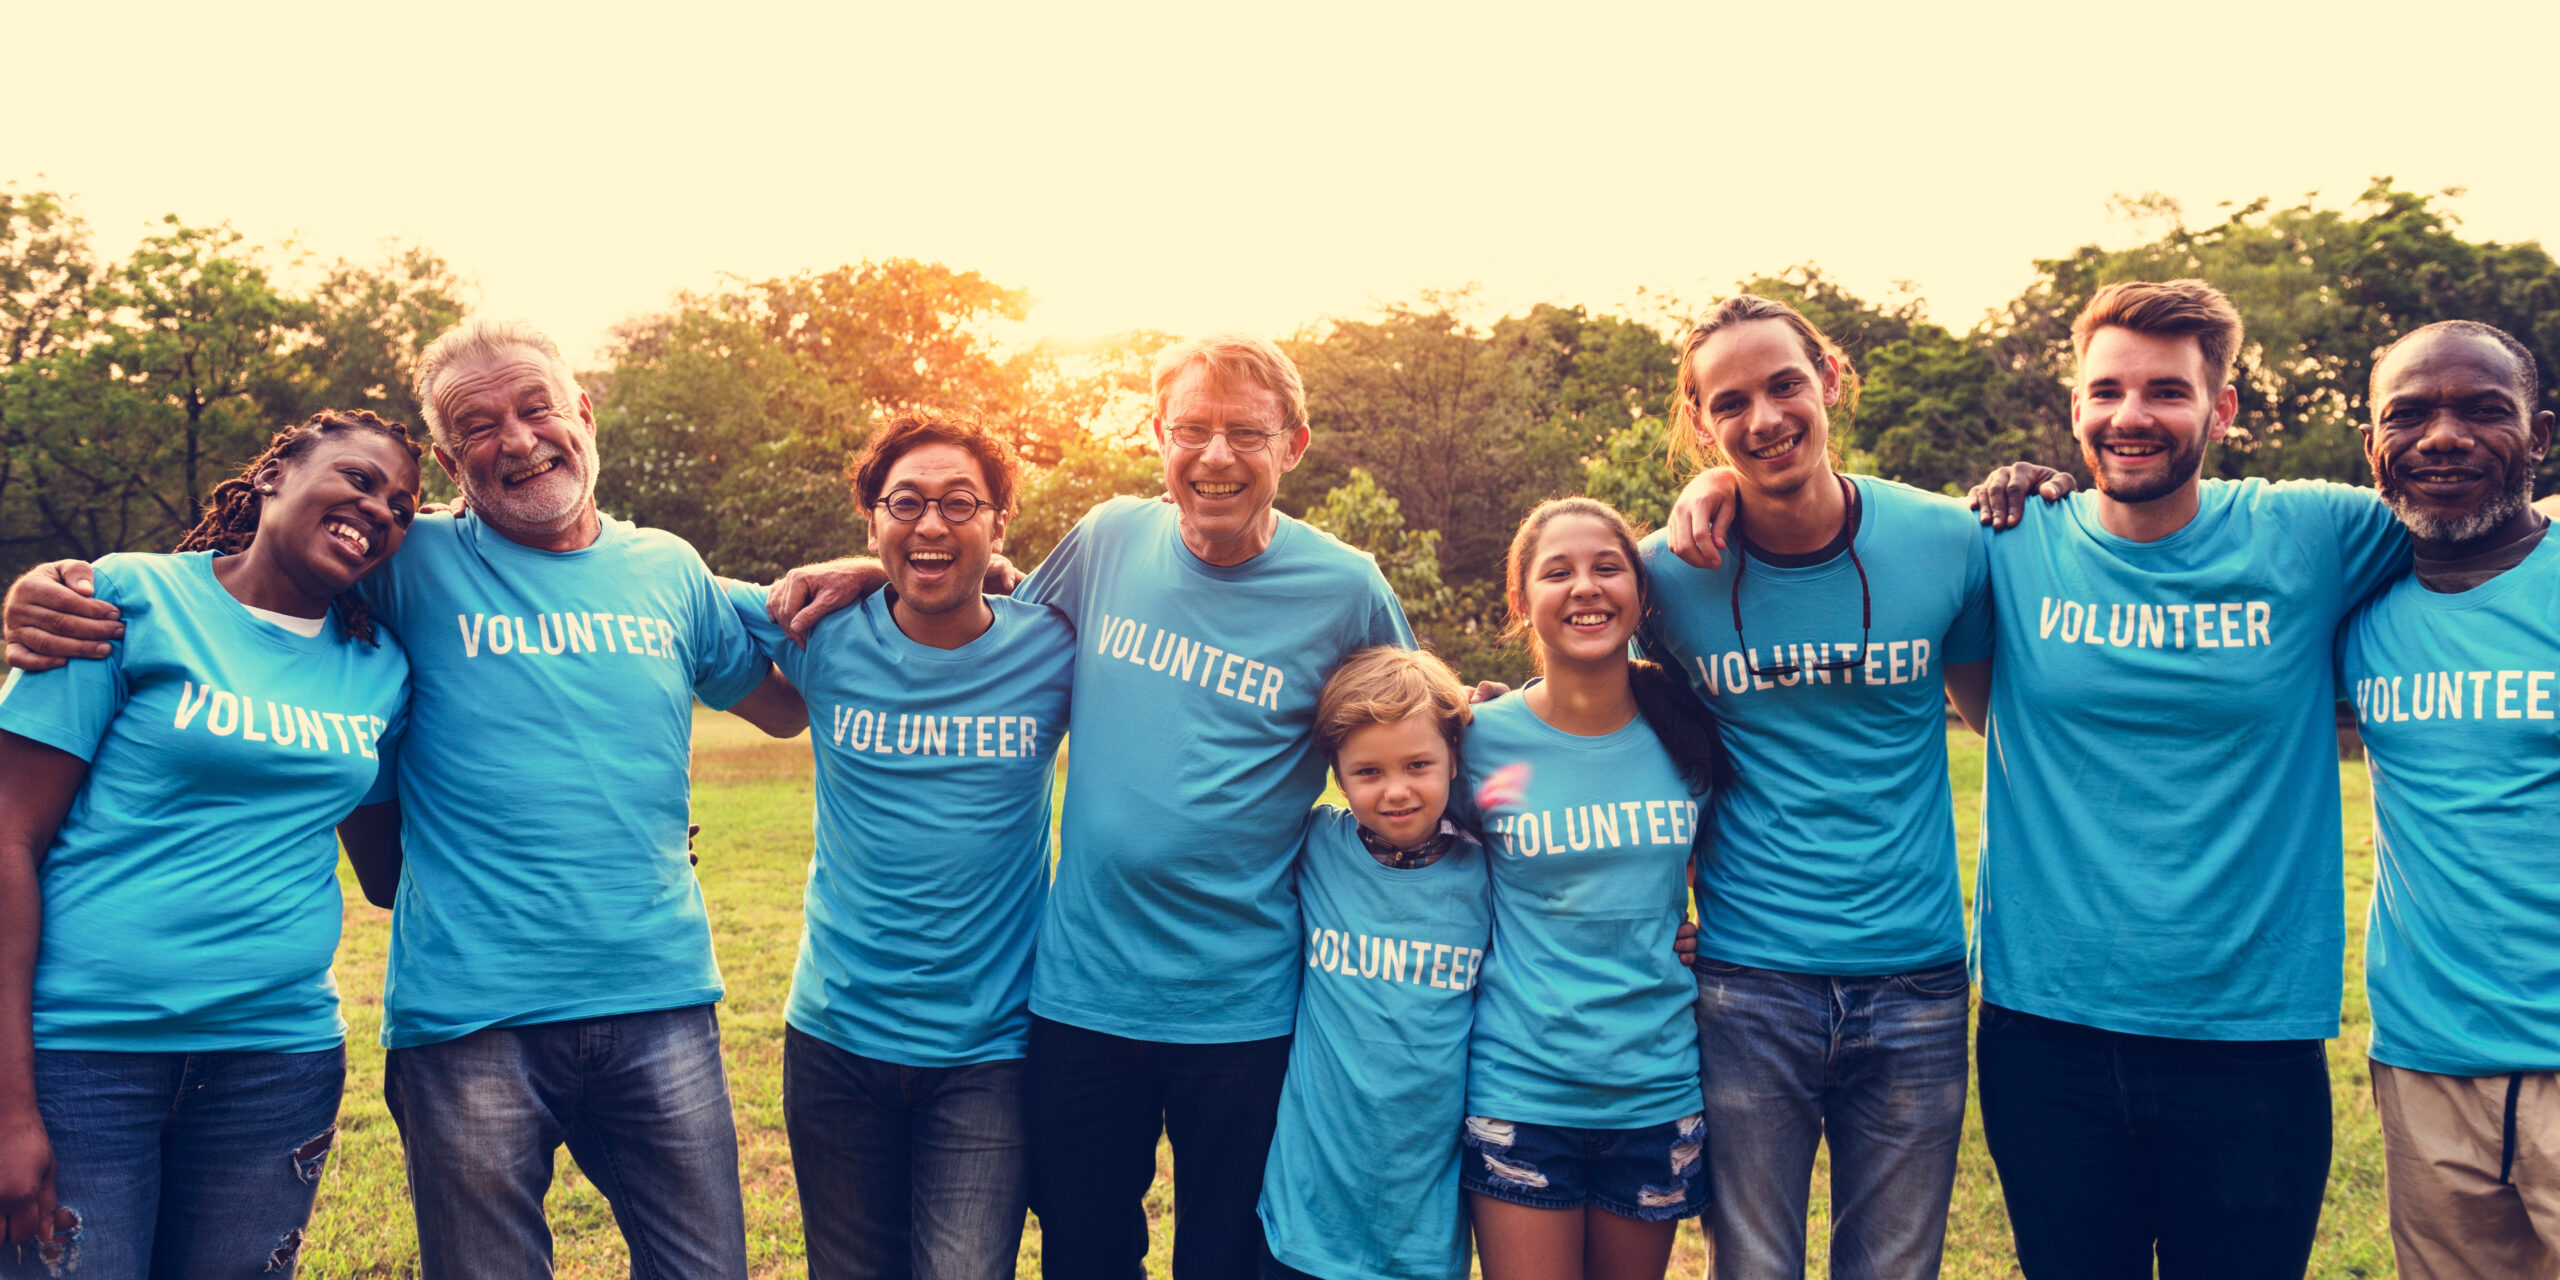 The Benefits of Volunteering for You and Your Community